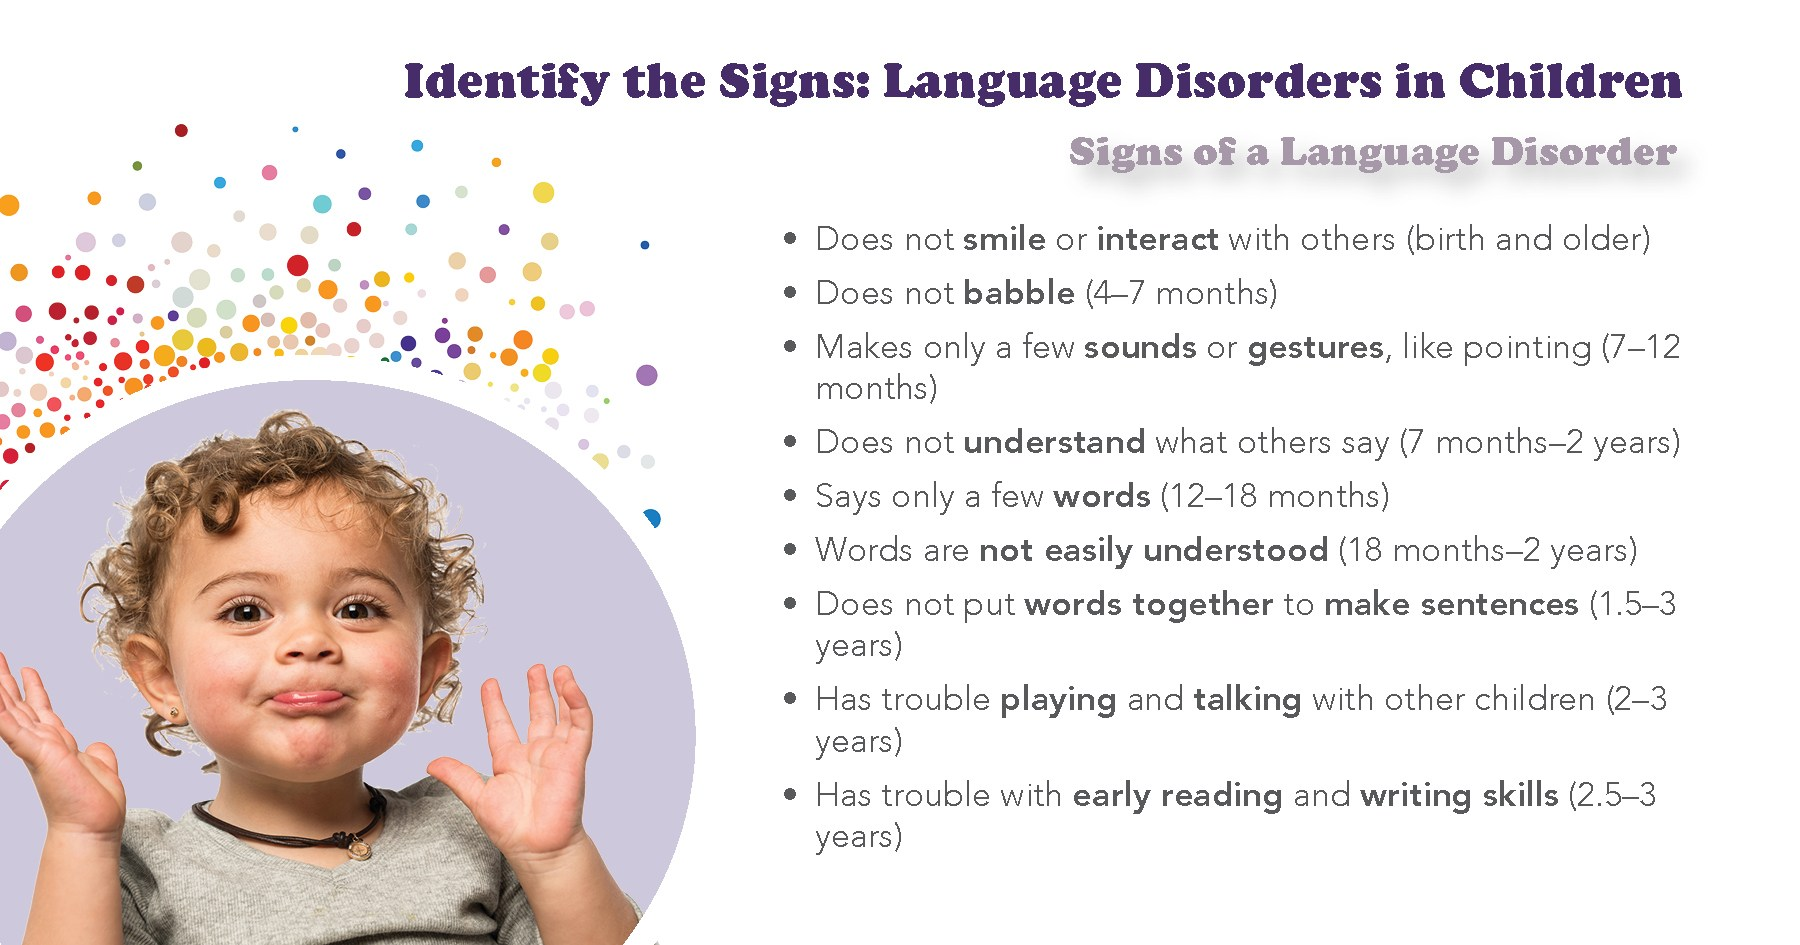 Identify-Signs-Language-Disorders-Preview.jpg